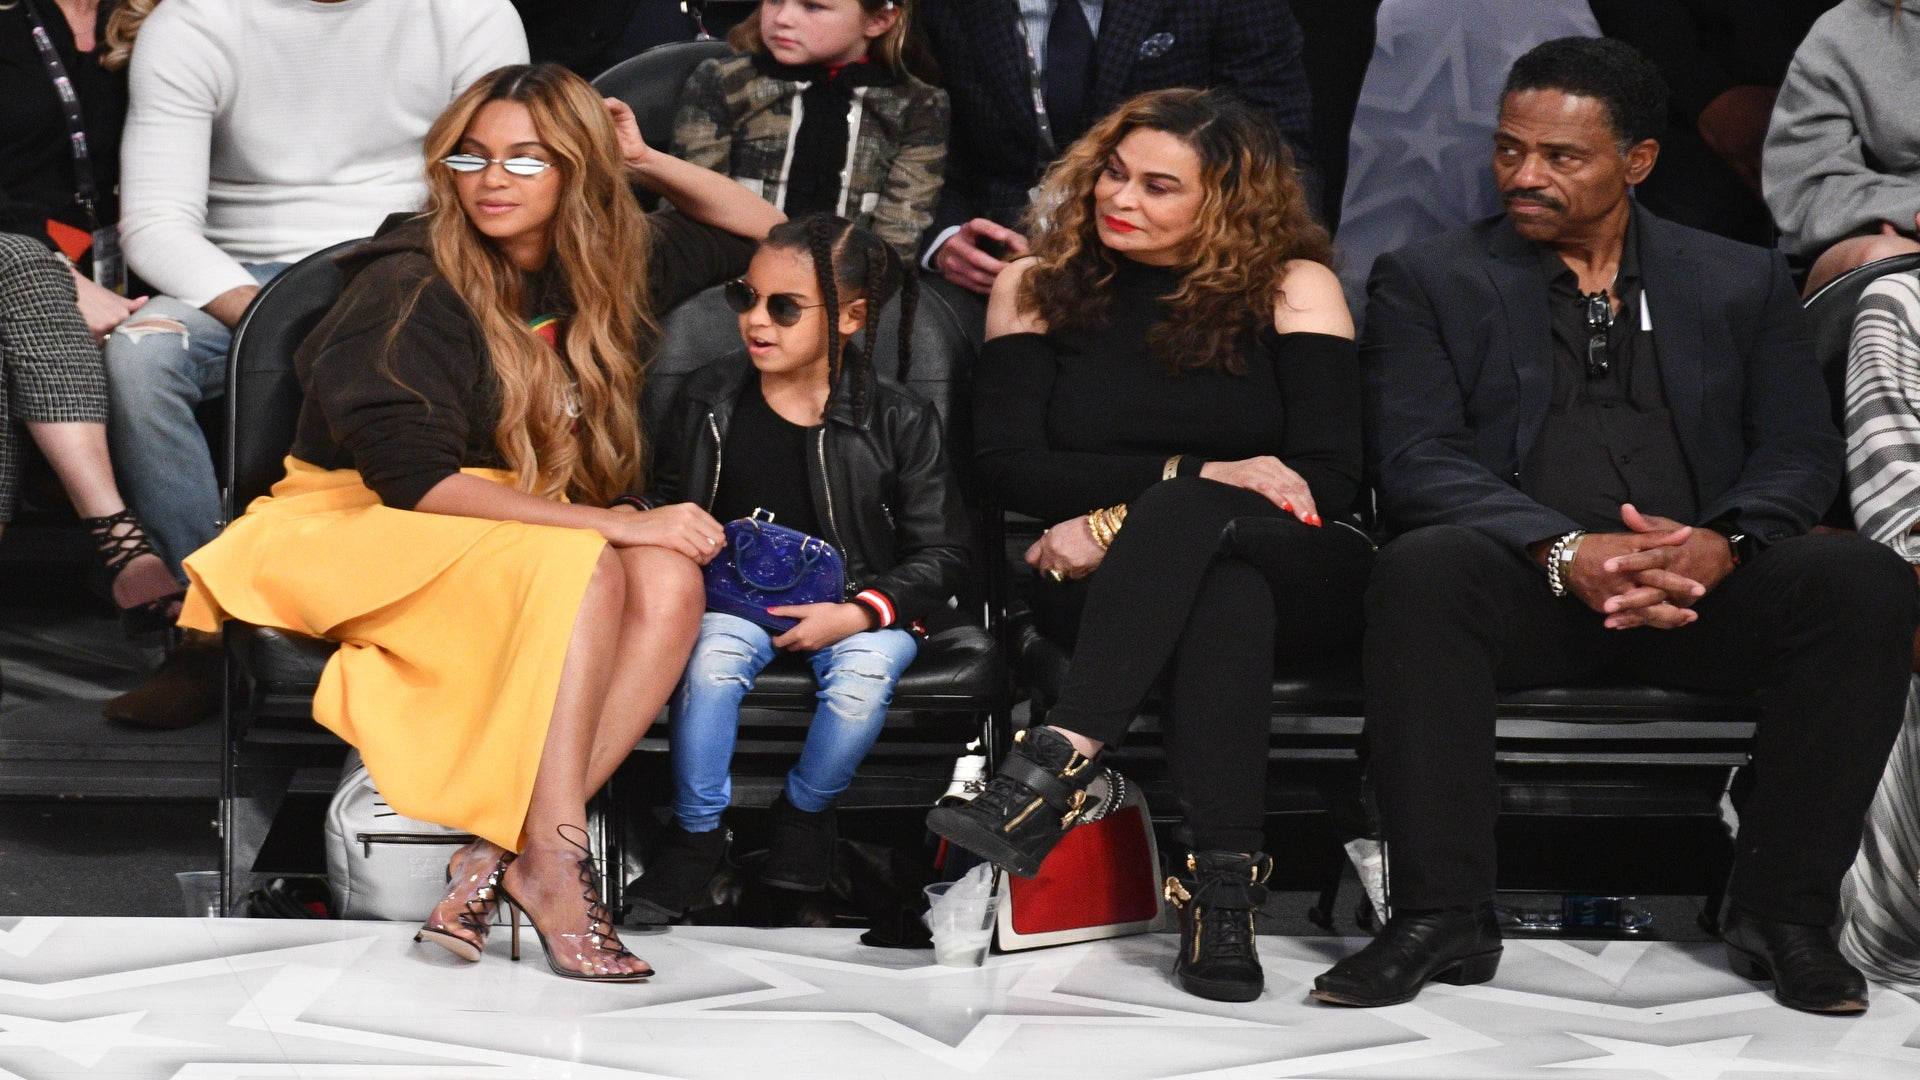 Beyonce And Blue Ivy Snap Mother-Daughter Selfies At The NBA All-Star Game